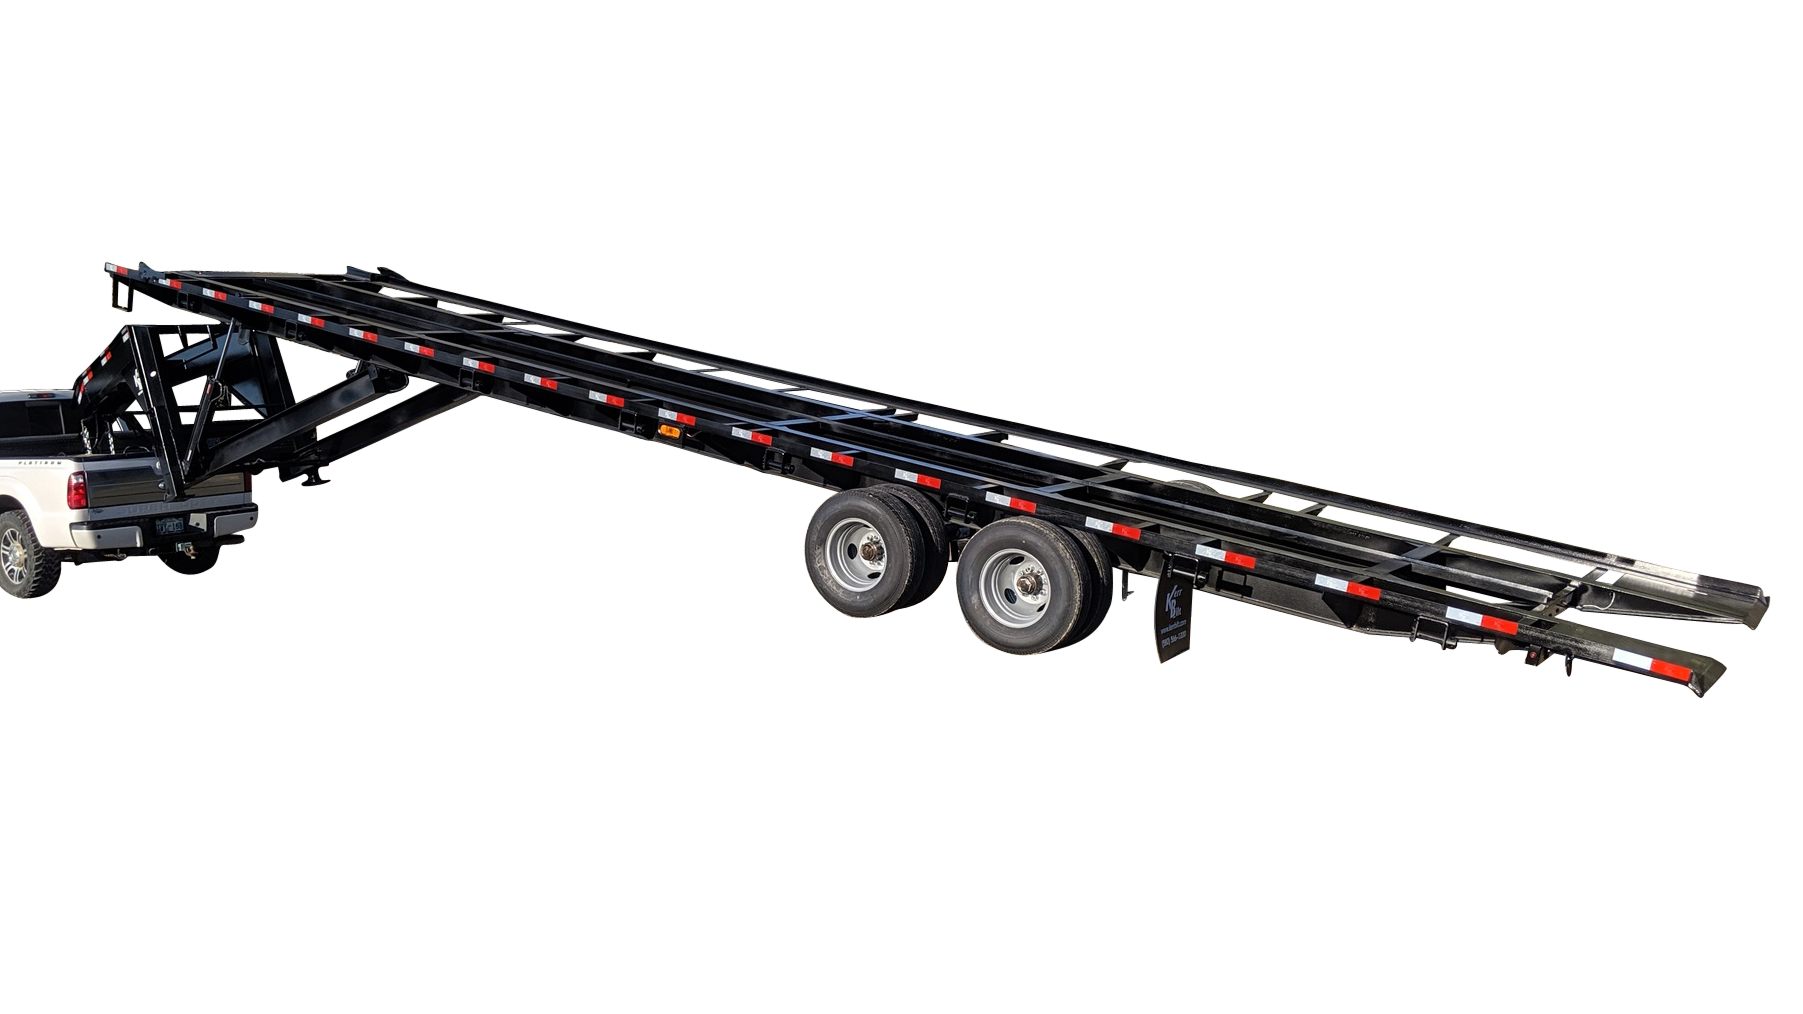 40ft tilt bed gooseneck trailer